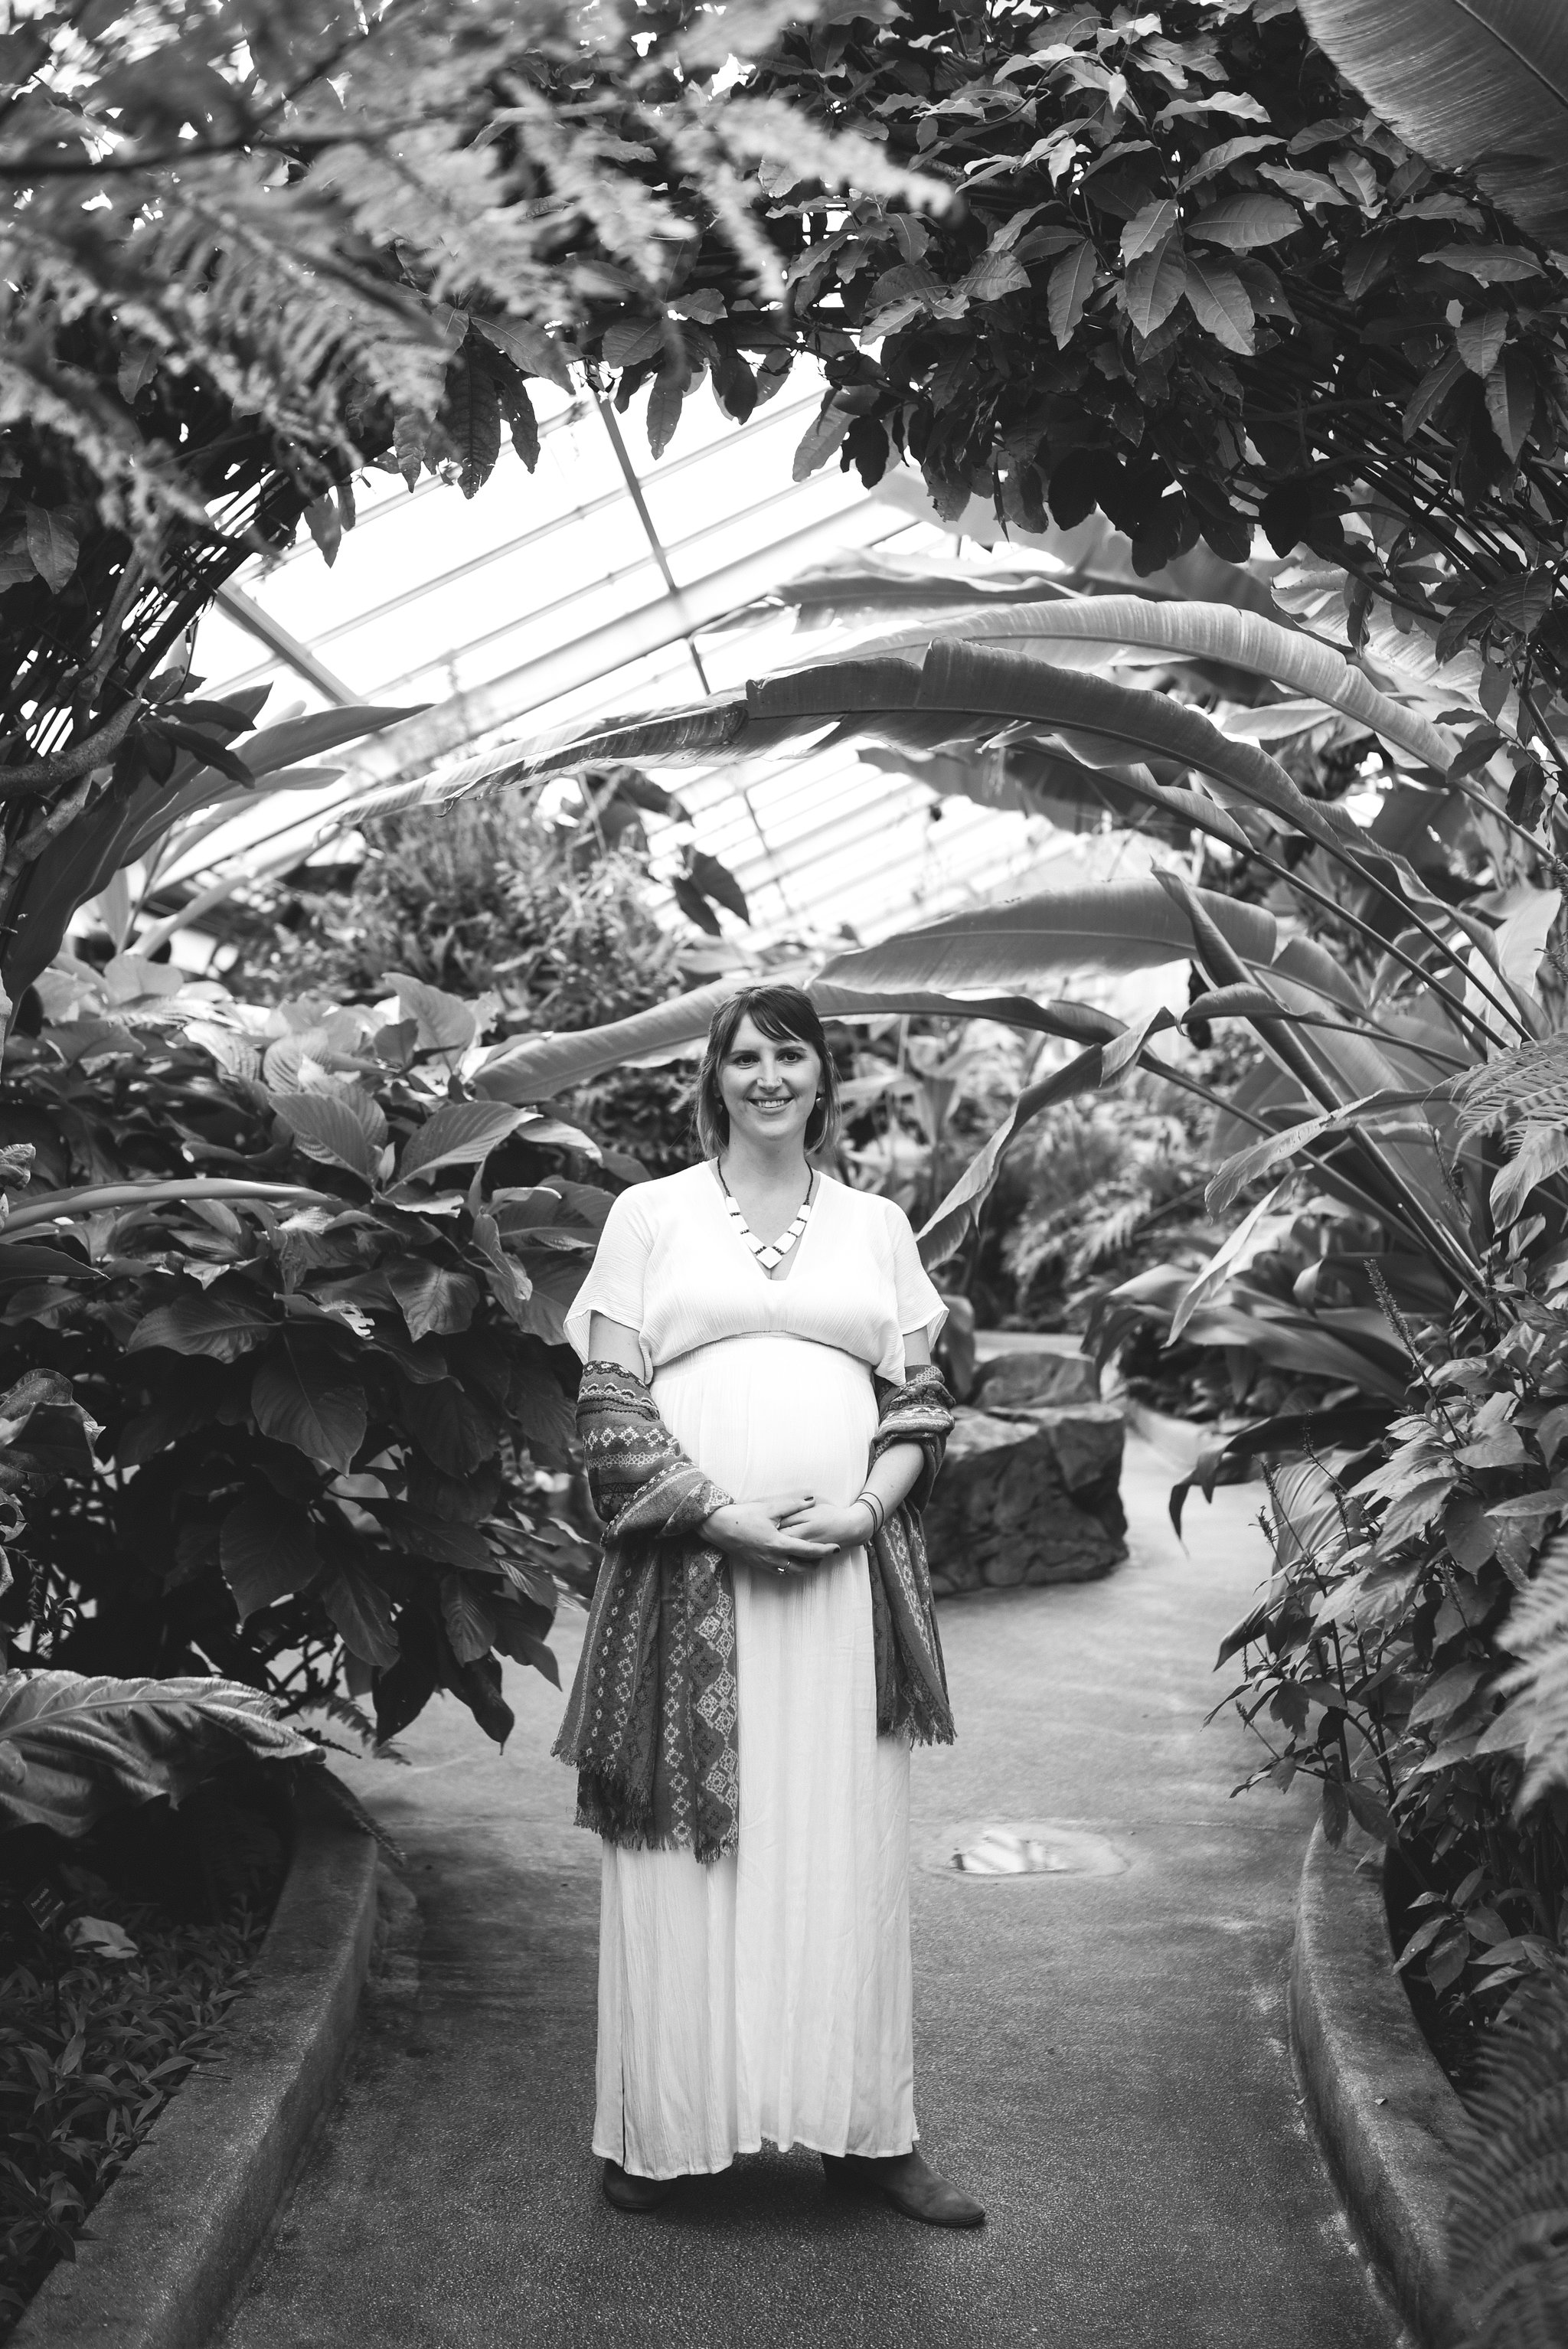 Rawlings Conservatory, Druid Hill Park, Intimate Wedding, Nature, Baltimore Wedding Photographer, Romantic, Classic, Portrait of Bride Among Trees, Black and White Photo, Statement Necklace, Pregnant Bride